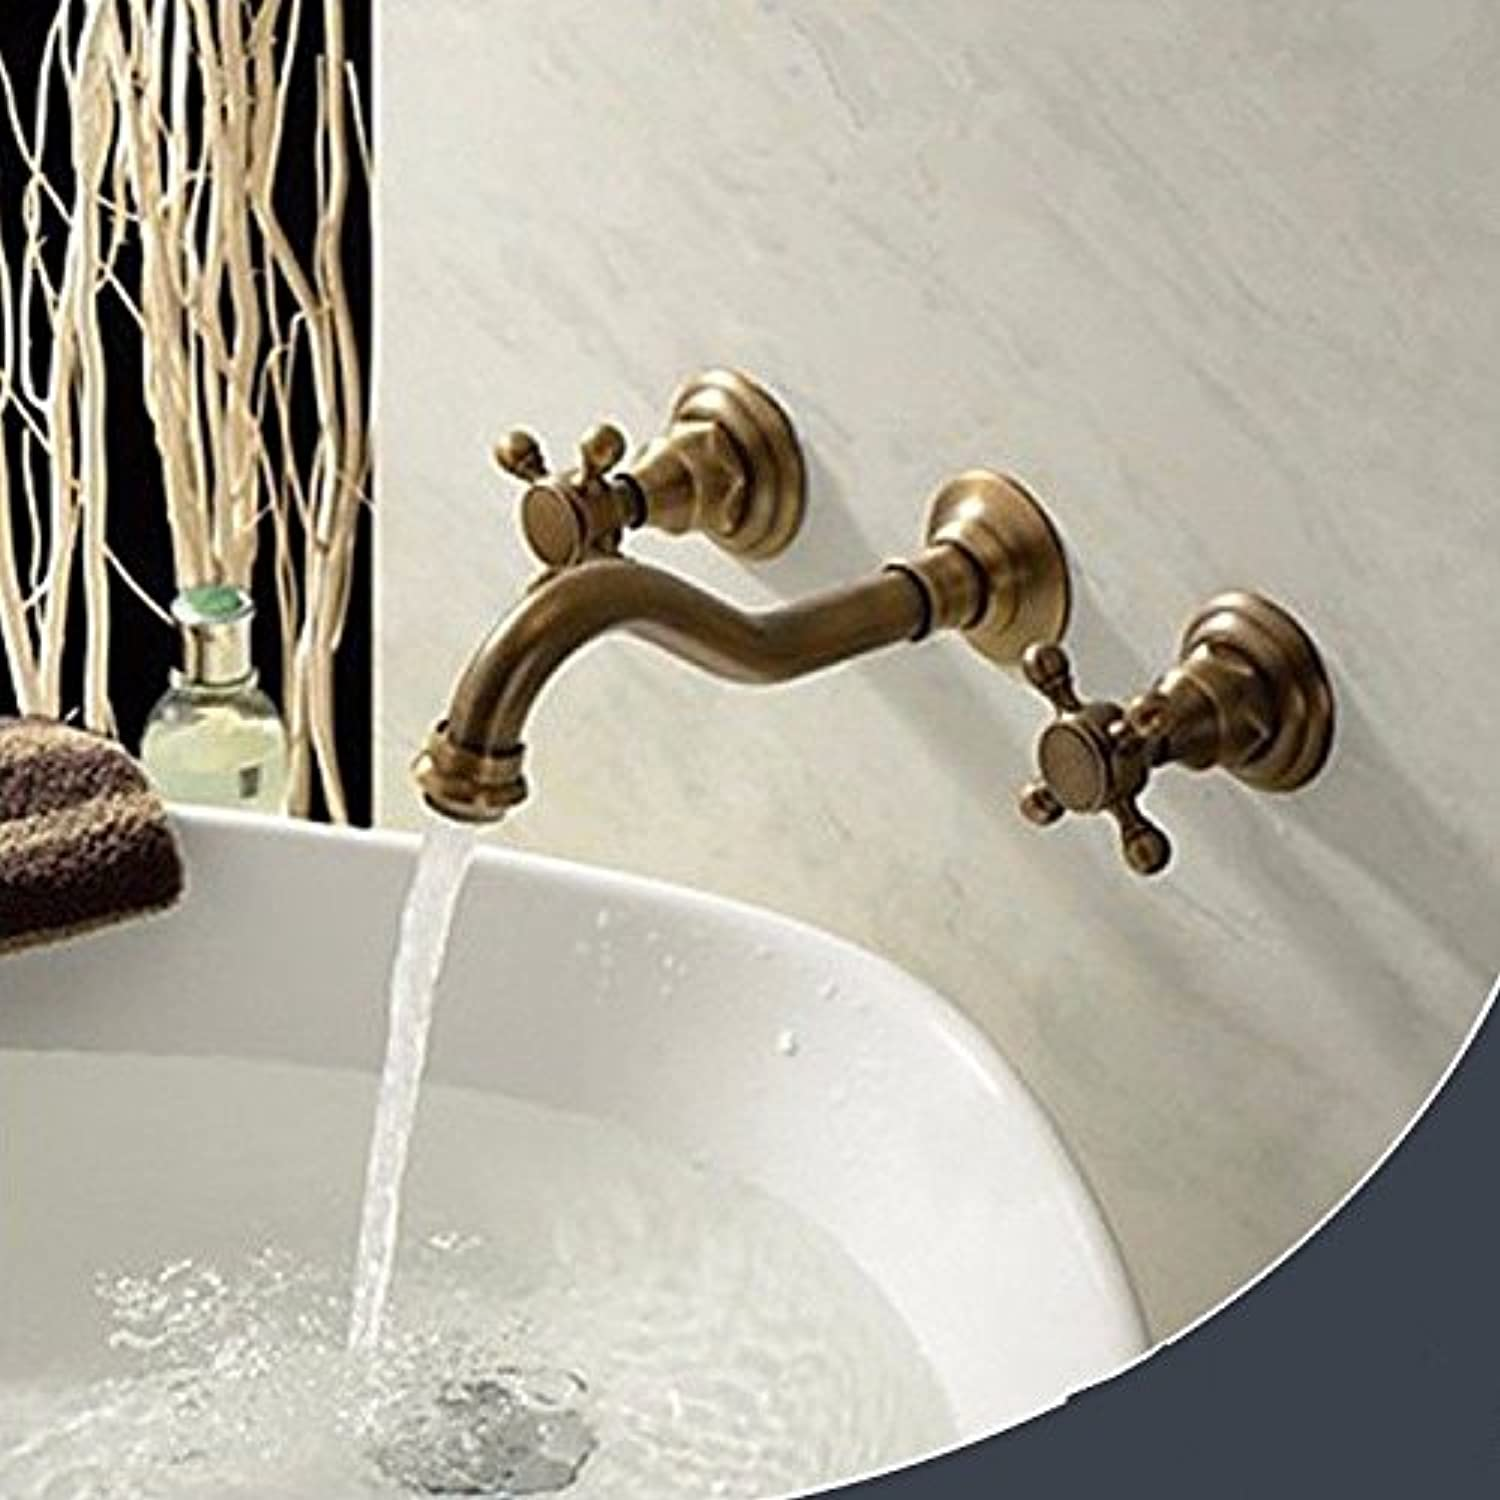 Lpophy Bathroom Sink Mixer Taps Faucet Bath Waterfall Cold and Hot Water Tap for Washroom Bathroom and Kitchen Retro Wall-Mounted Concealed Hot and Cold Water Ceramic Valve Three-Hole Double Handle